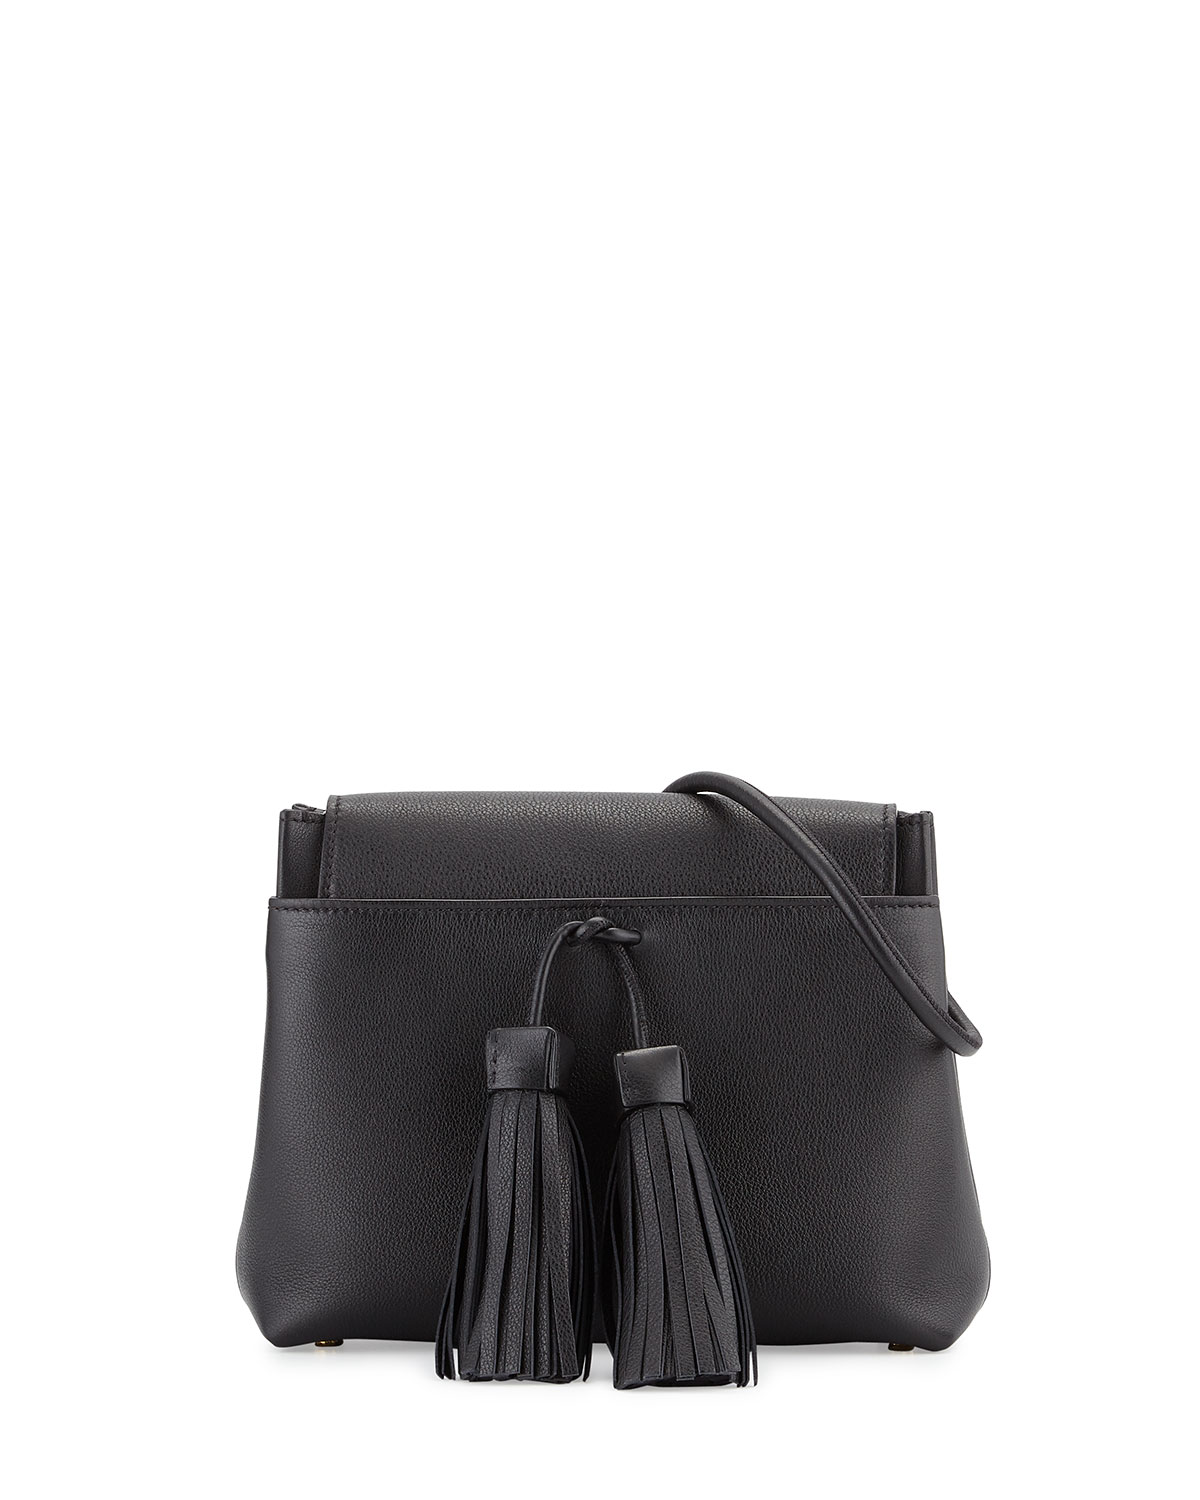 Leonica Tassel Crossbody Bag, Black